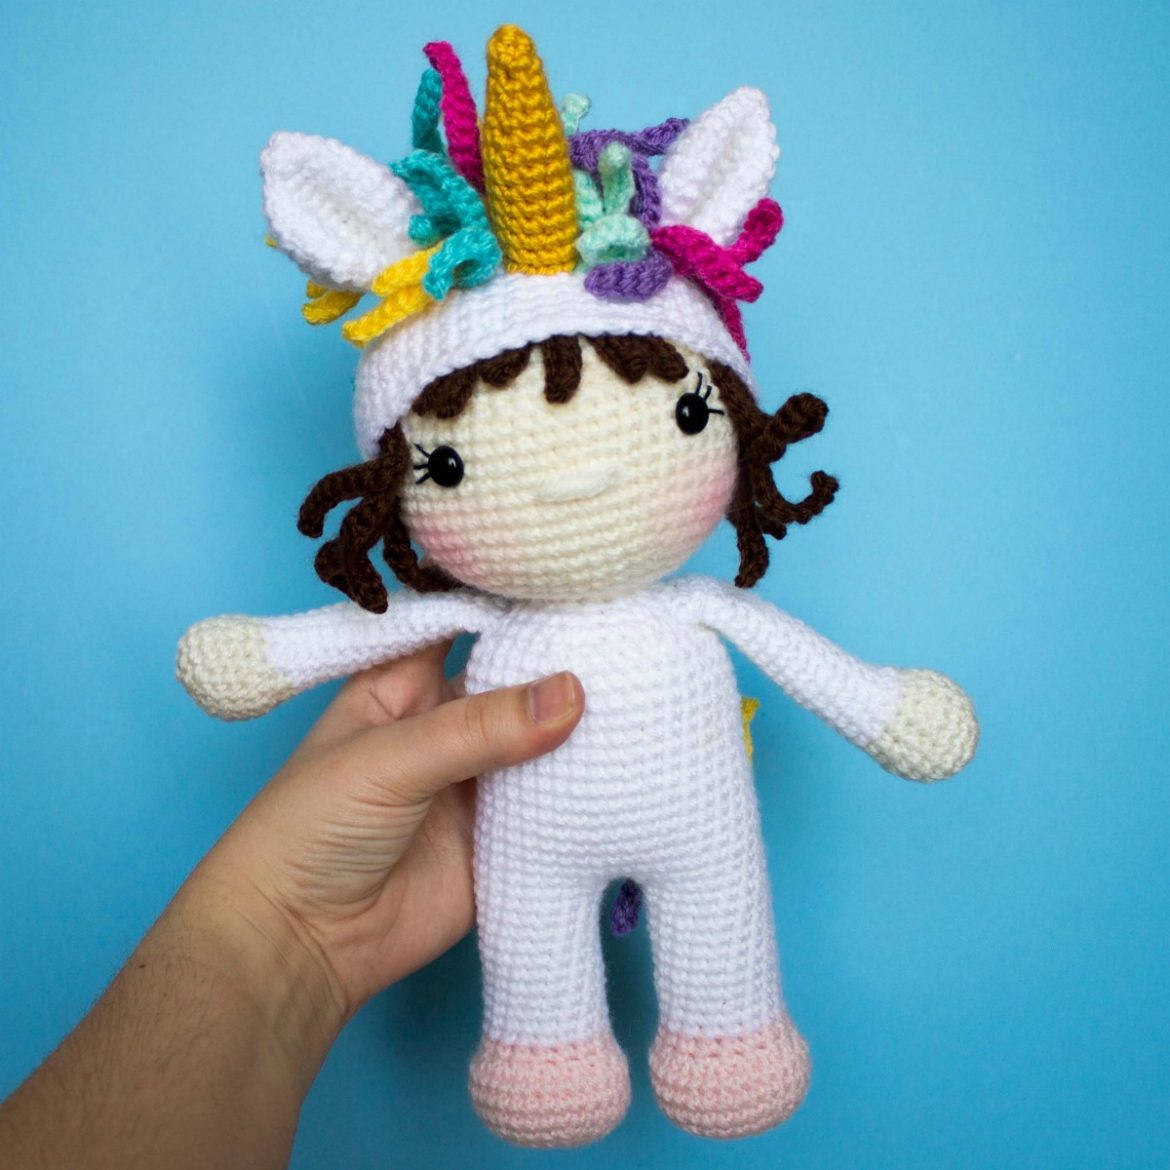 Wanda the Crochet Unicorn Doll